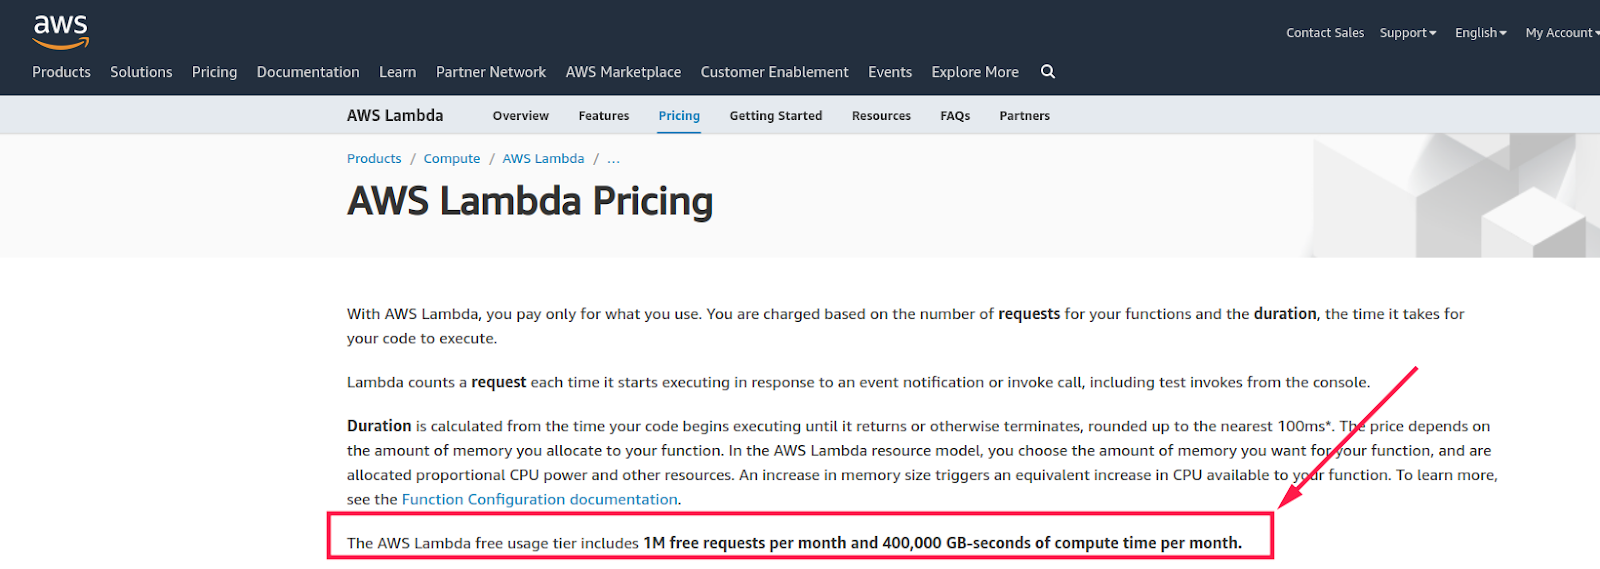 AWS Lamda Pricing